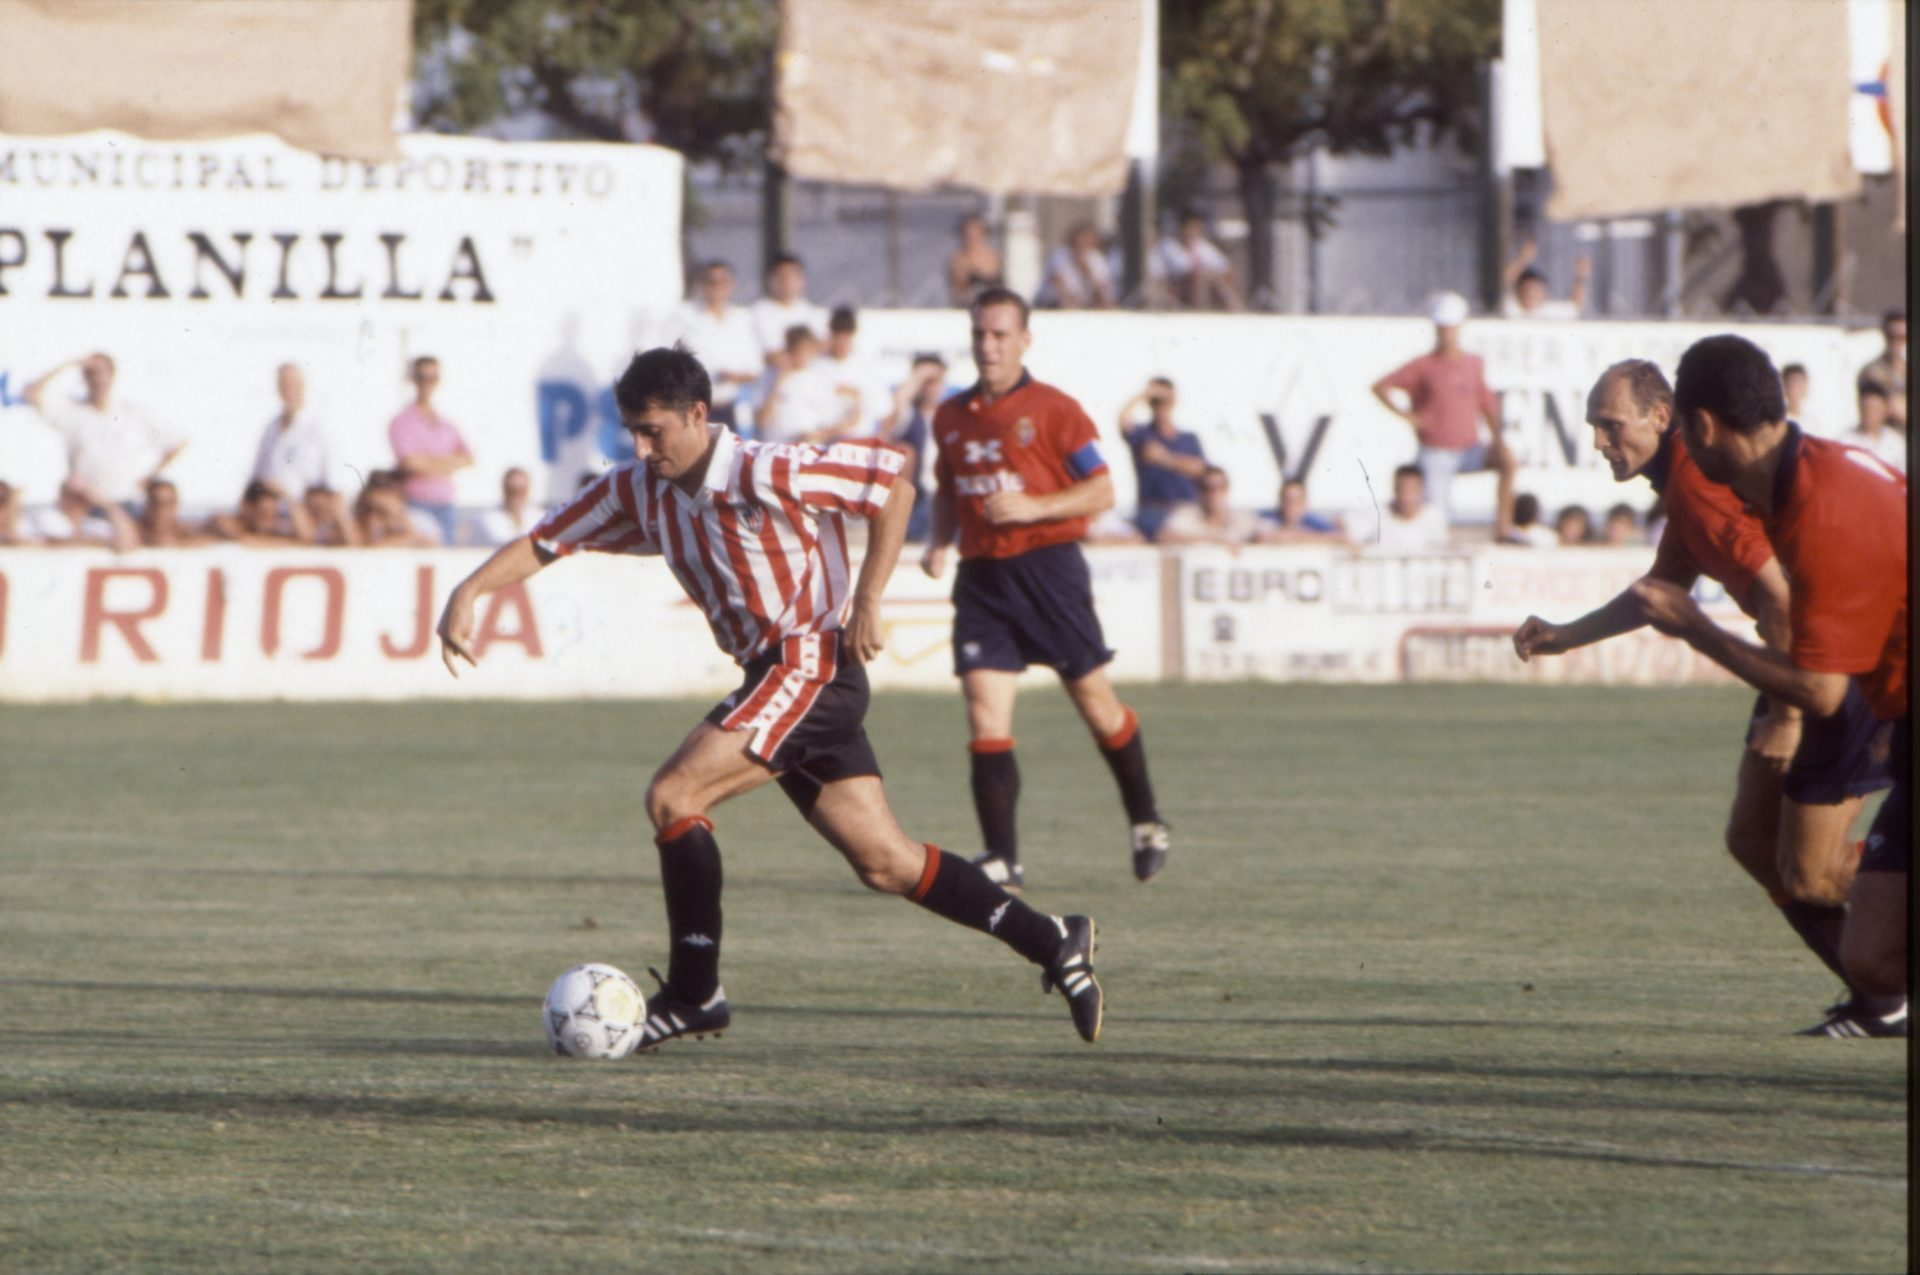 Ernesto Valverde: Athletic and the ant